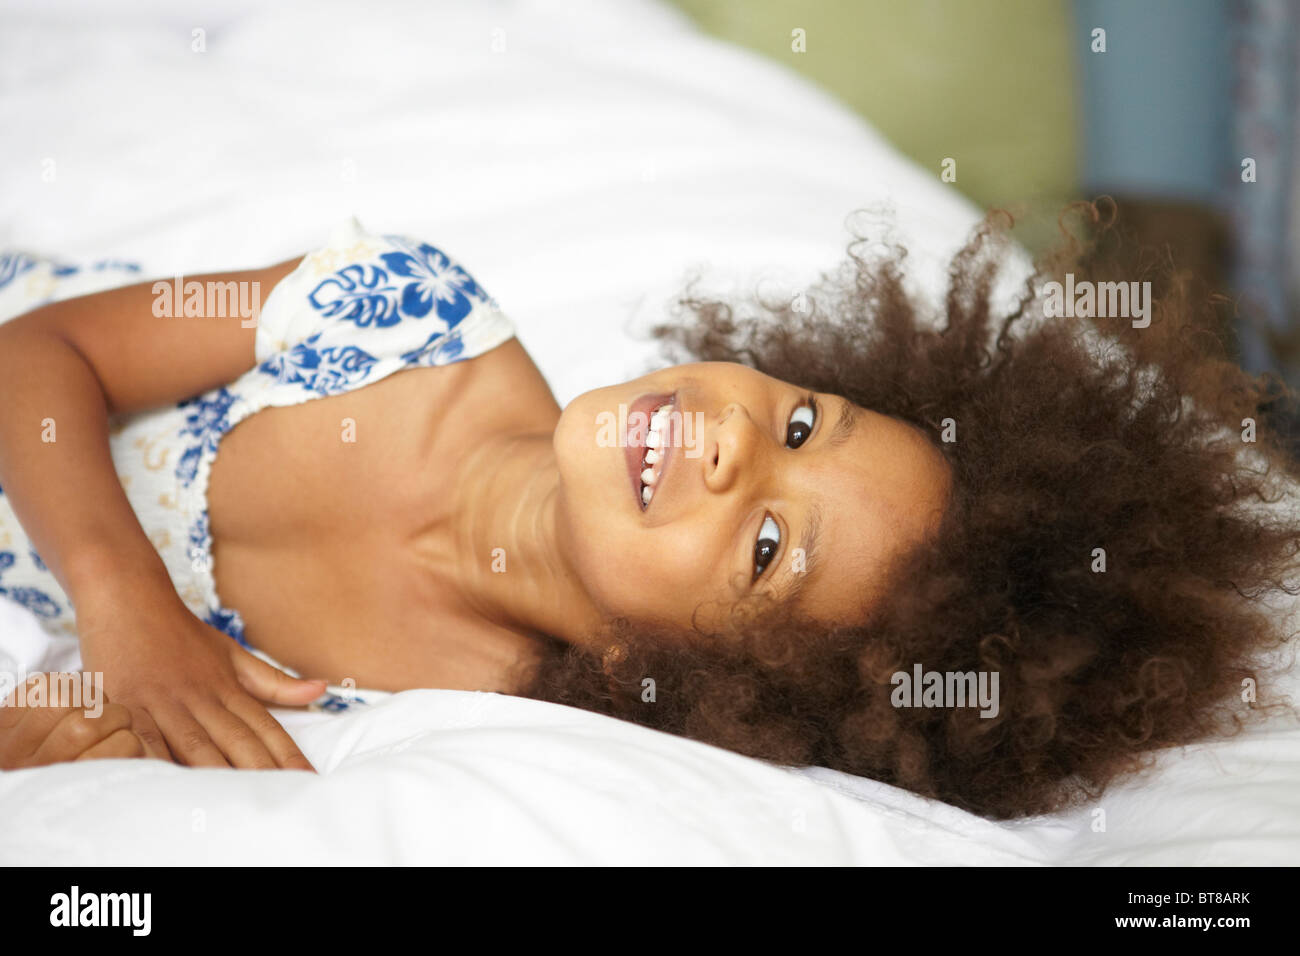 young mixed race girl, child laying on bed with white sheets in blue and white summer dress. Stock Photo